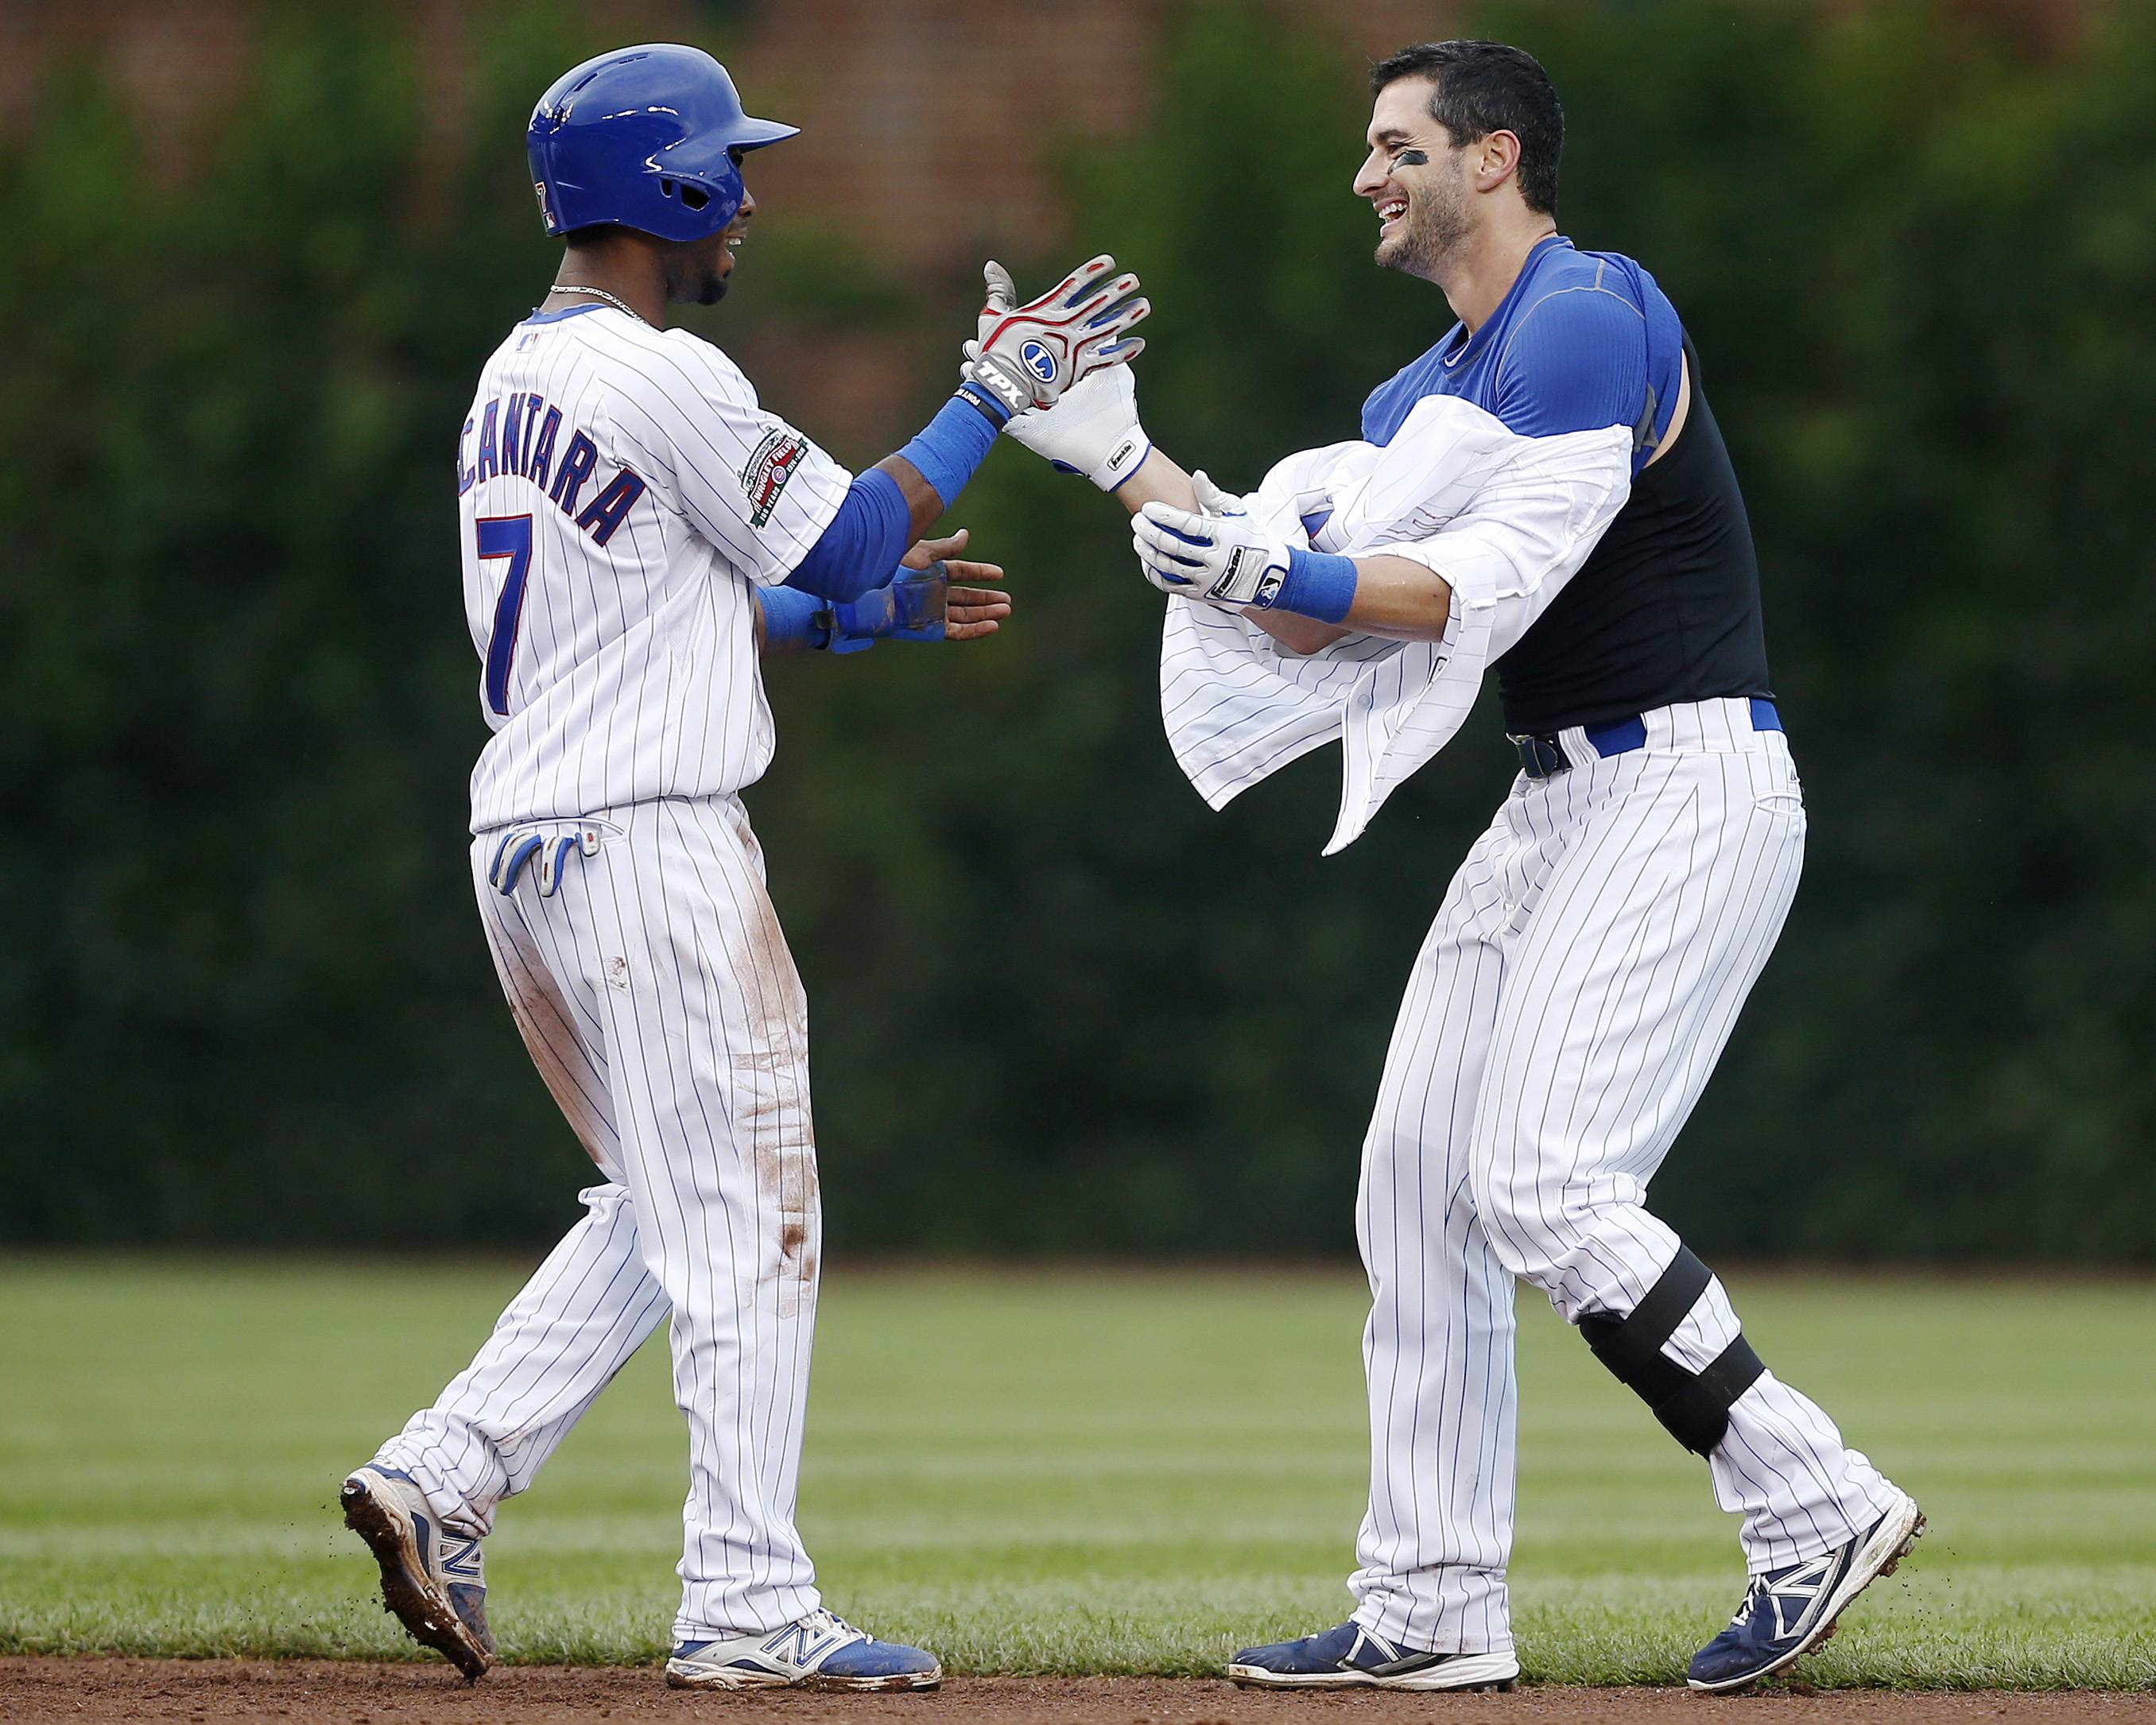 Arismendy Alcantara, left, celebrates with Justin Ruggiano after Ruggiano hit a game-winning RBI single, allowing Alcantara to score, Friday against the Atlanta Braves.